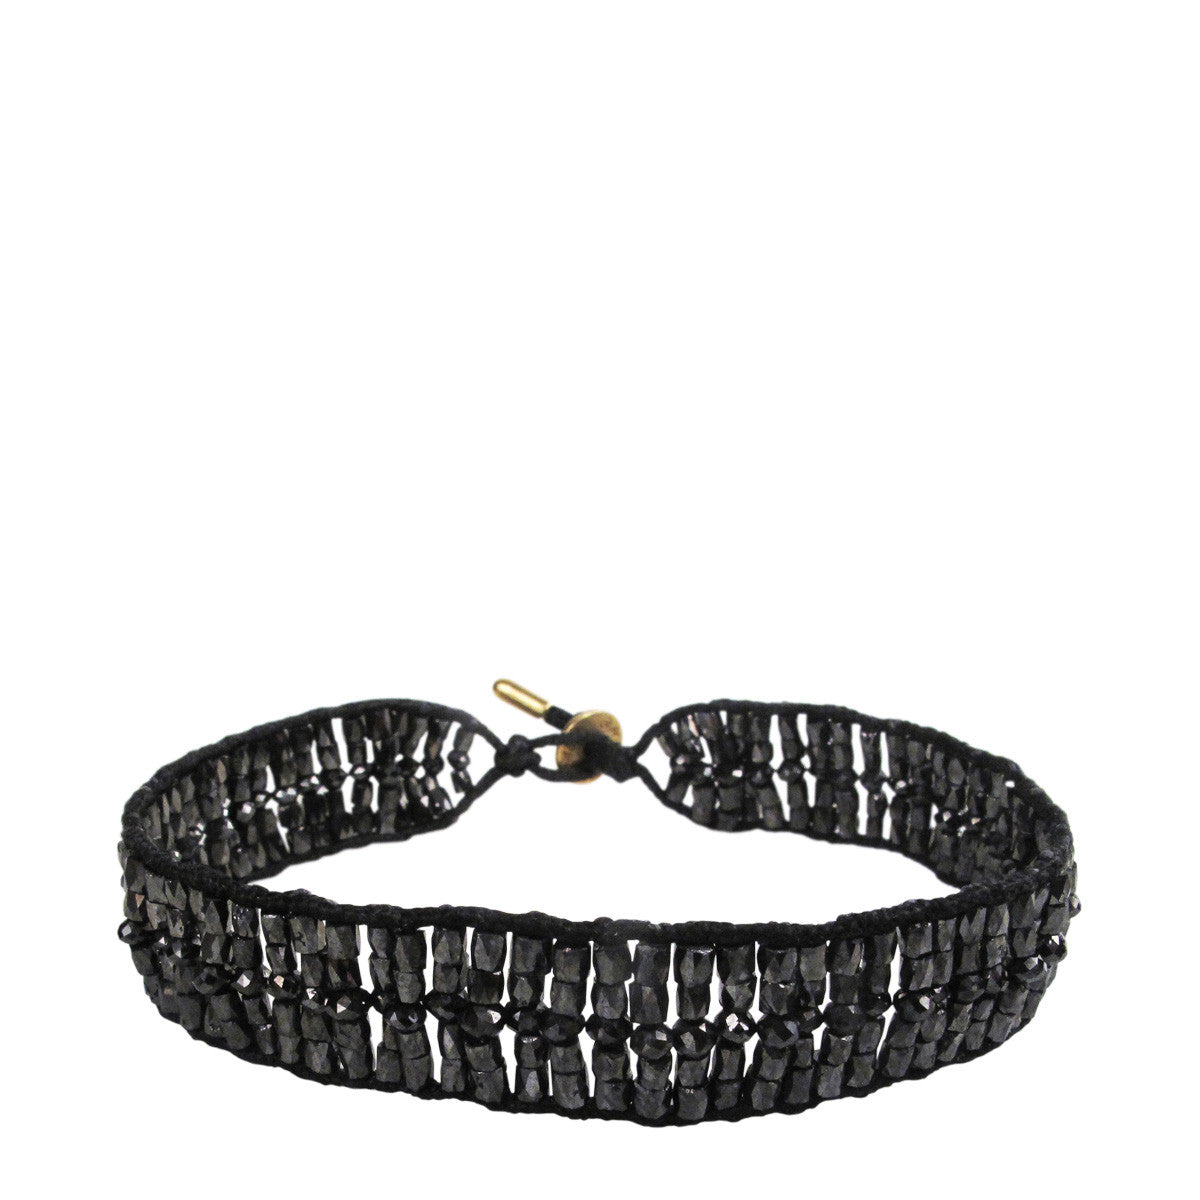 18K Gold Wide Woven Tube and Rondelle Bracelet in Black Diamonds